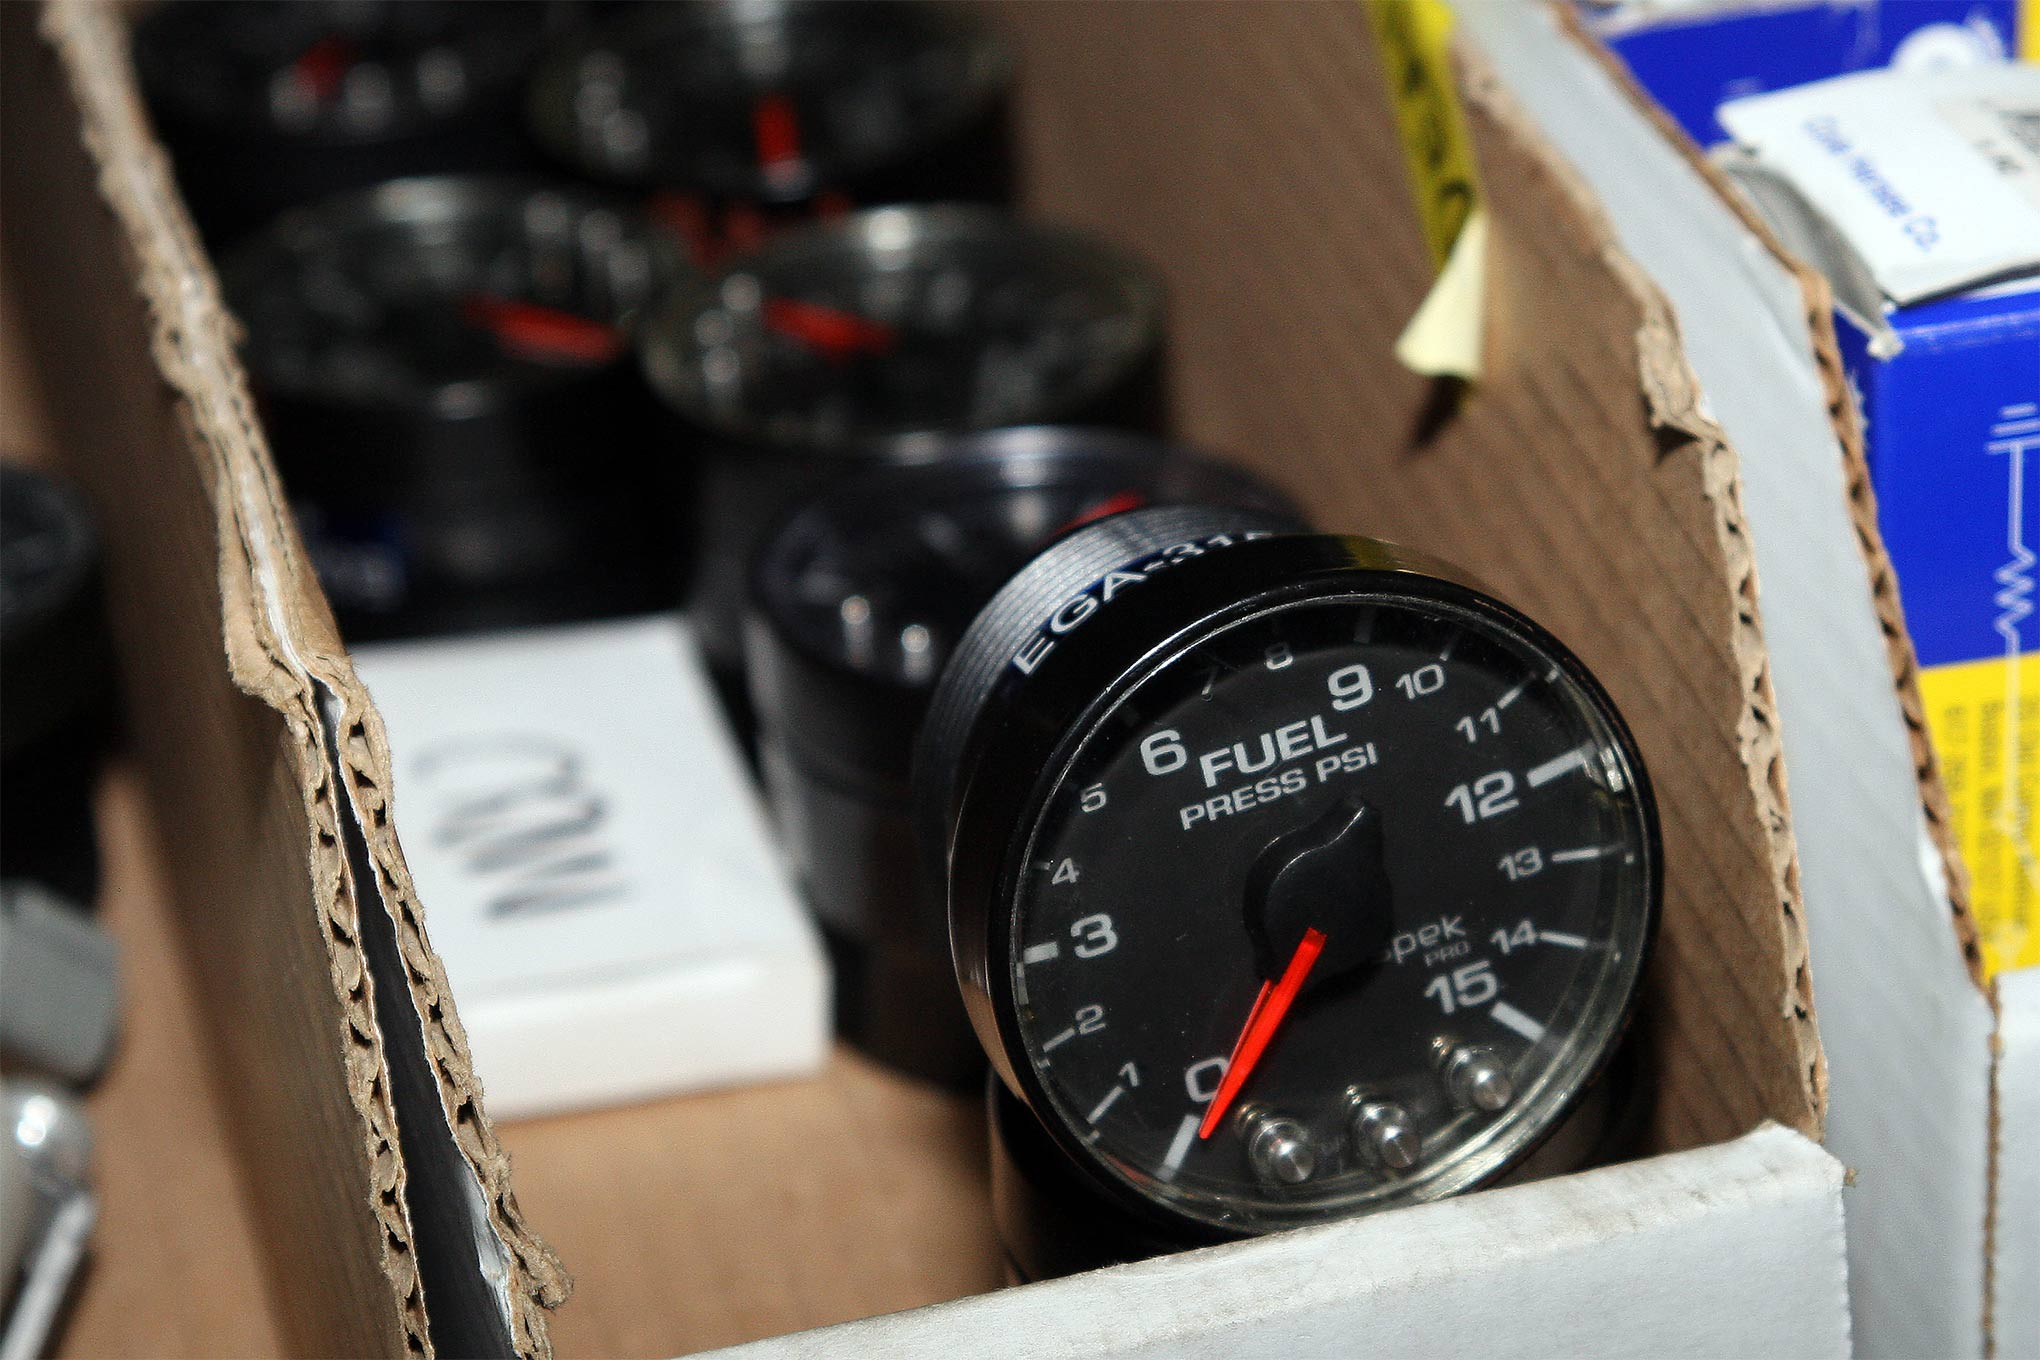 Here is one of the best deals we've found. Now that NASCAR teams are moving to a digital dash, the gauges they formerly used are flooding the market. These Spec gauges by AutoMeter are lightweight and very high quality. You could put together a full dash from the used options. These fuel-pressure gauges were just one example. New, they sell for 250 dollars, but were available here for 25.